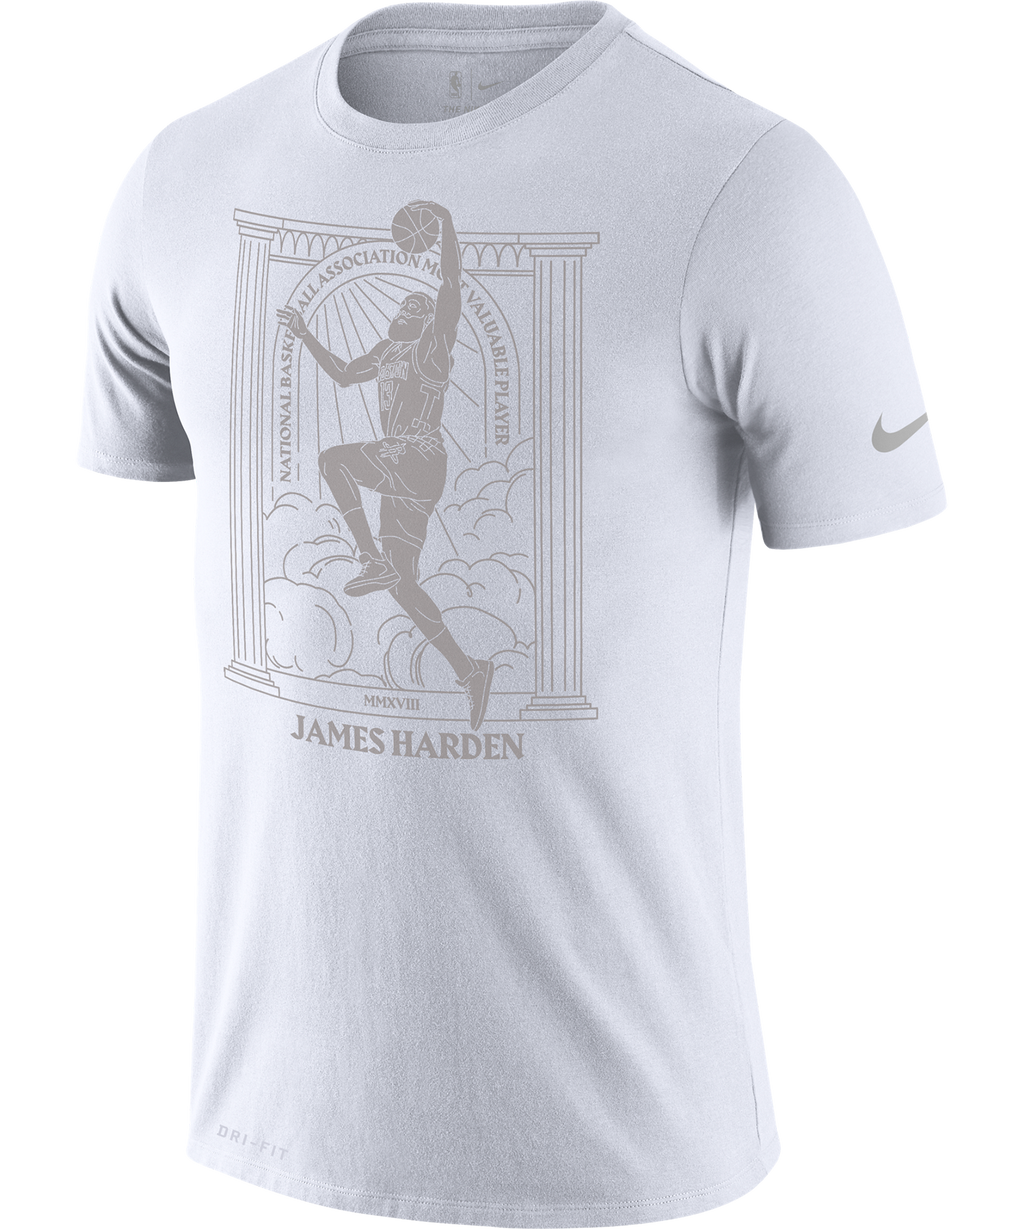 James Harden Houston Rockets MVP Nike Dri-Fit Tee 2